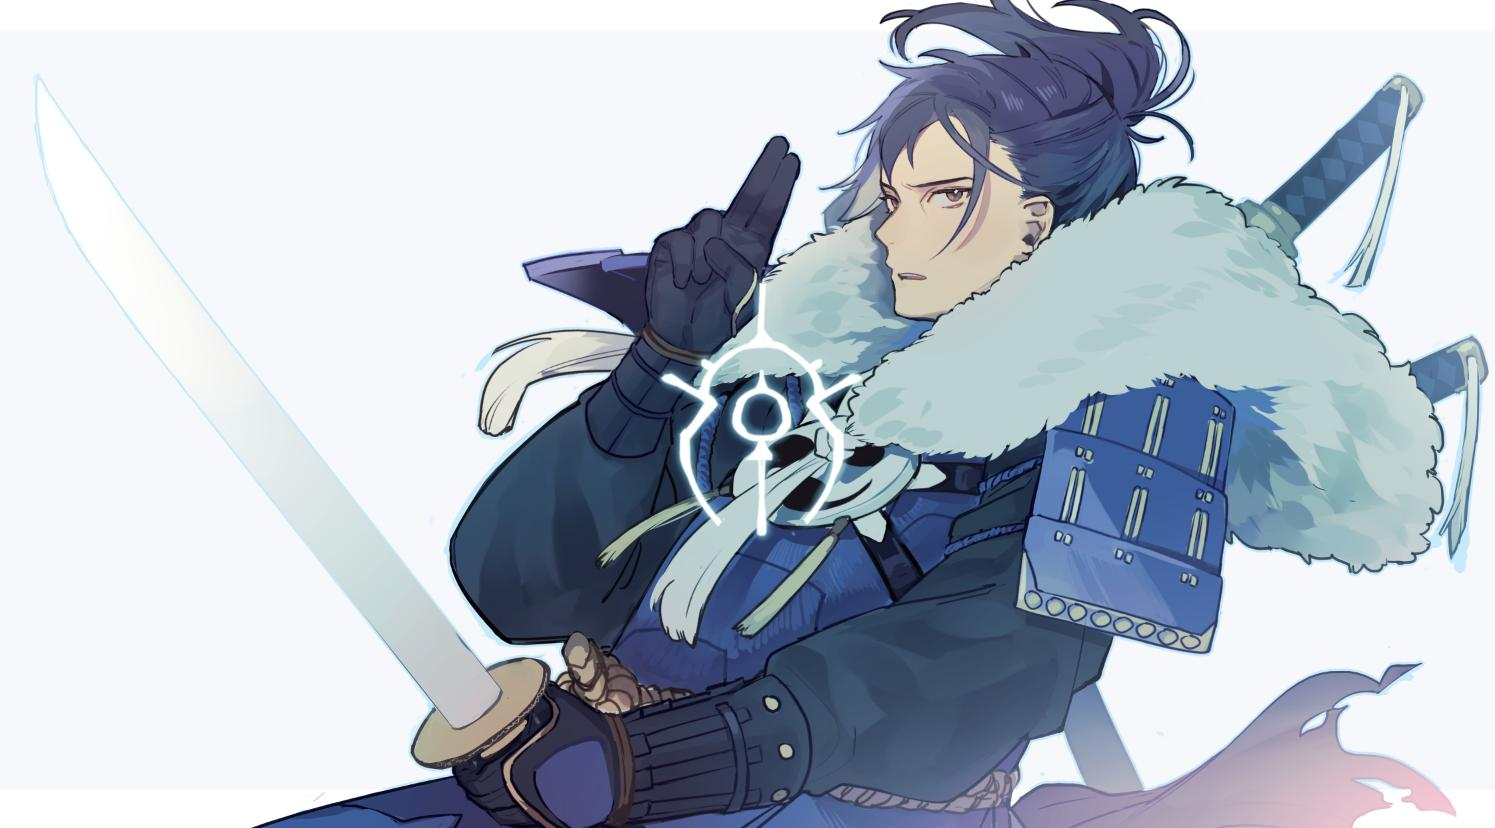 1boy alternate_costume armor belt black_hair brown_eyes esutanisan felix_hugo_fraldarius fire_emblem fire_emblem:_three_houses fur_trim gloves japanese_armor katana male_focus ponytail solo sword torn_clothes upper_body weapon white_background